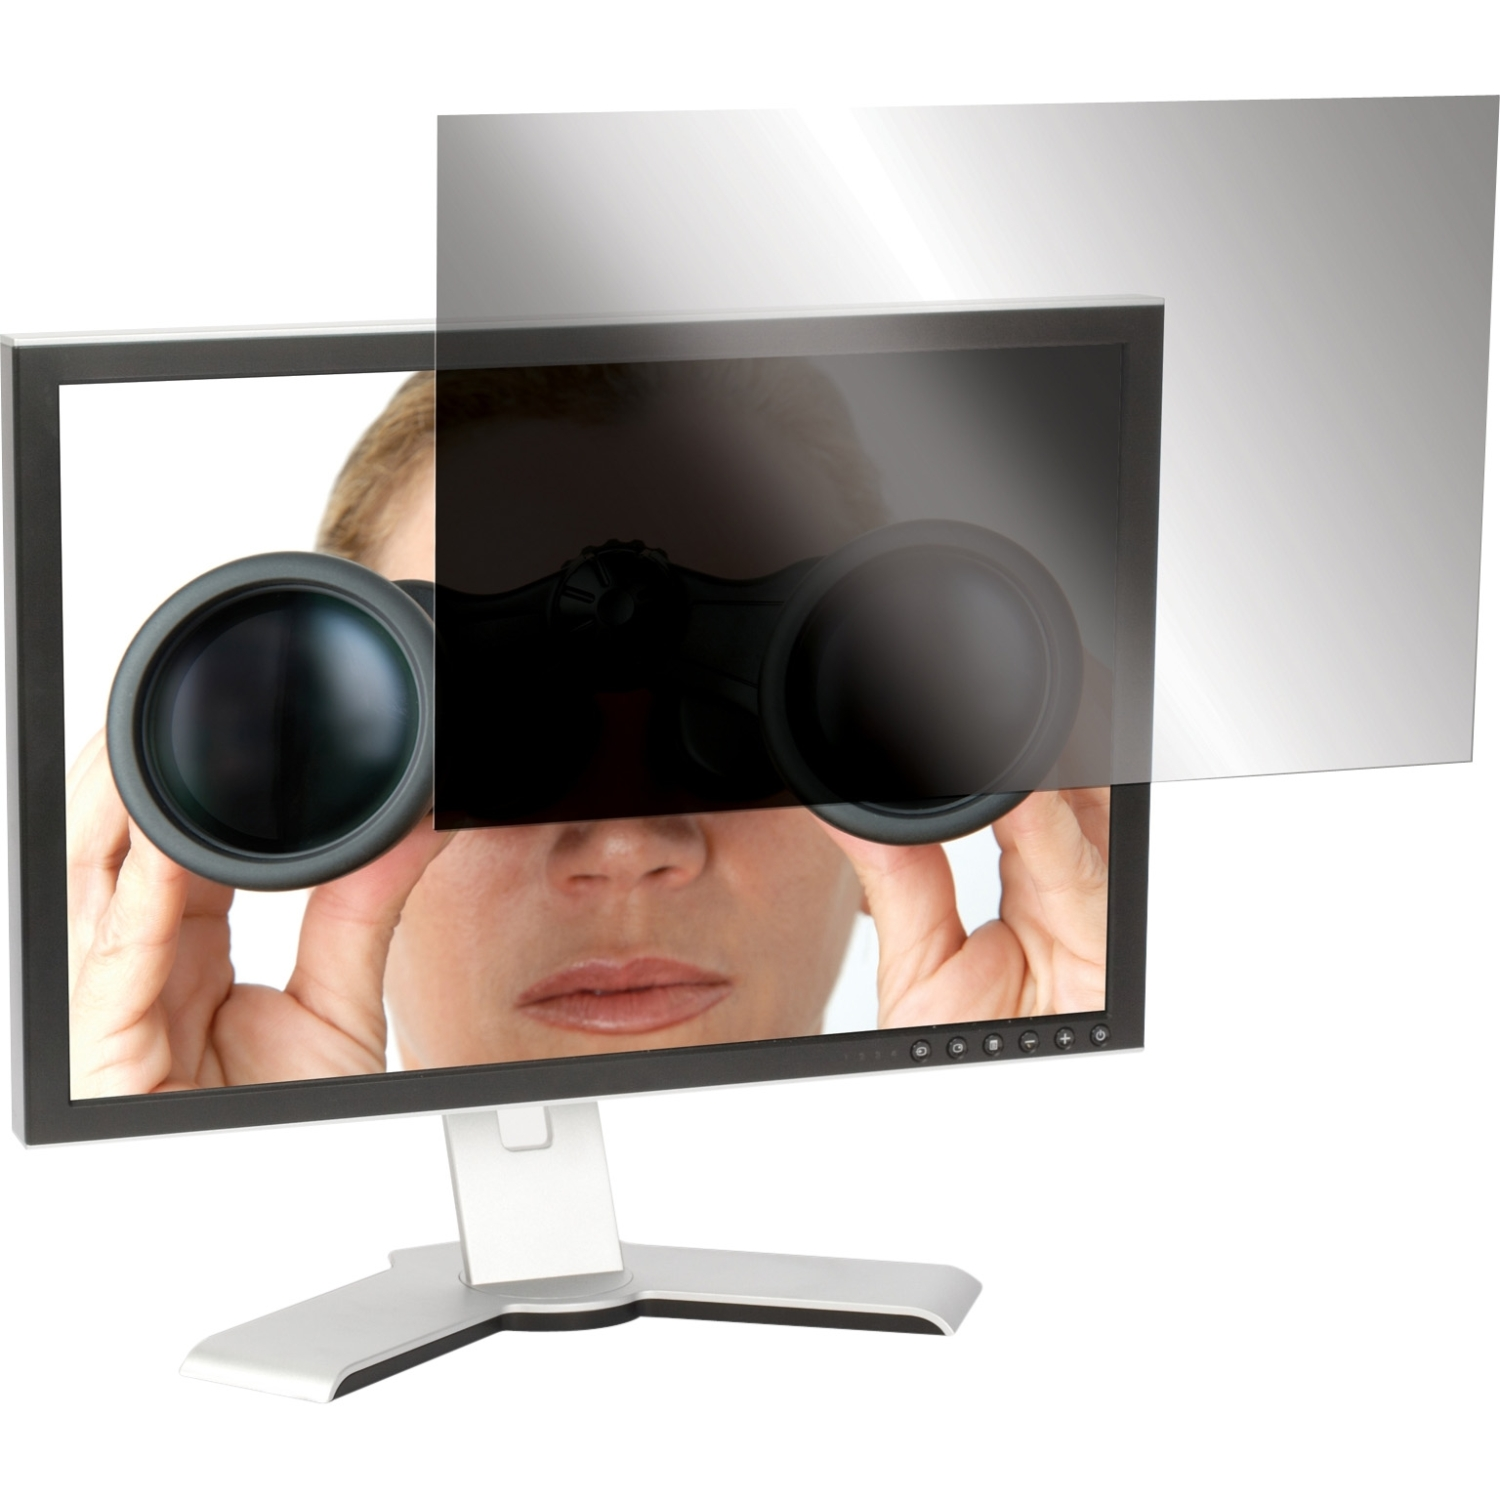 20 inch Widescreen LCD Monitor Privacy Screen (16:9) - Display privacy filter - 20 inch wide